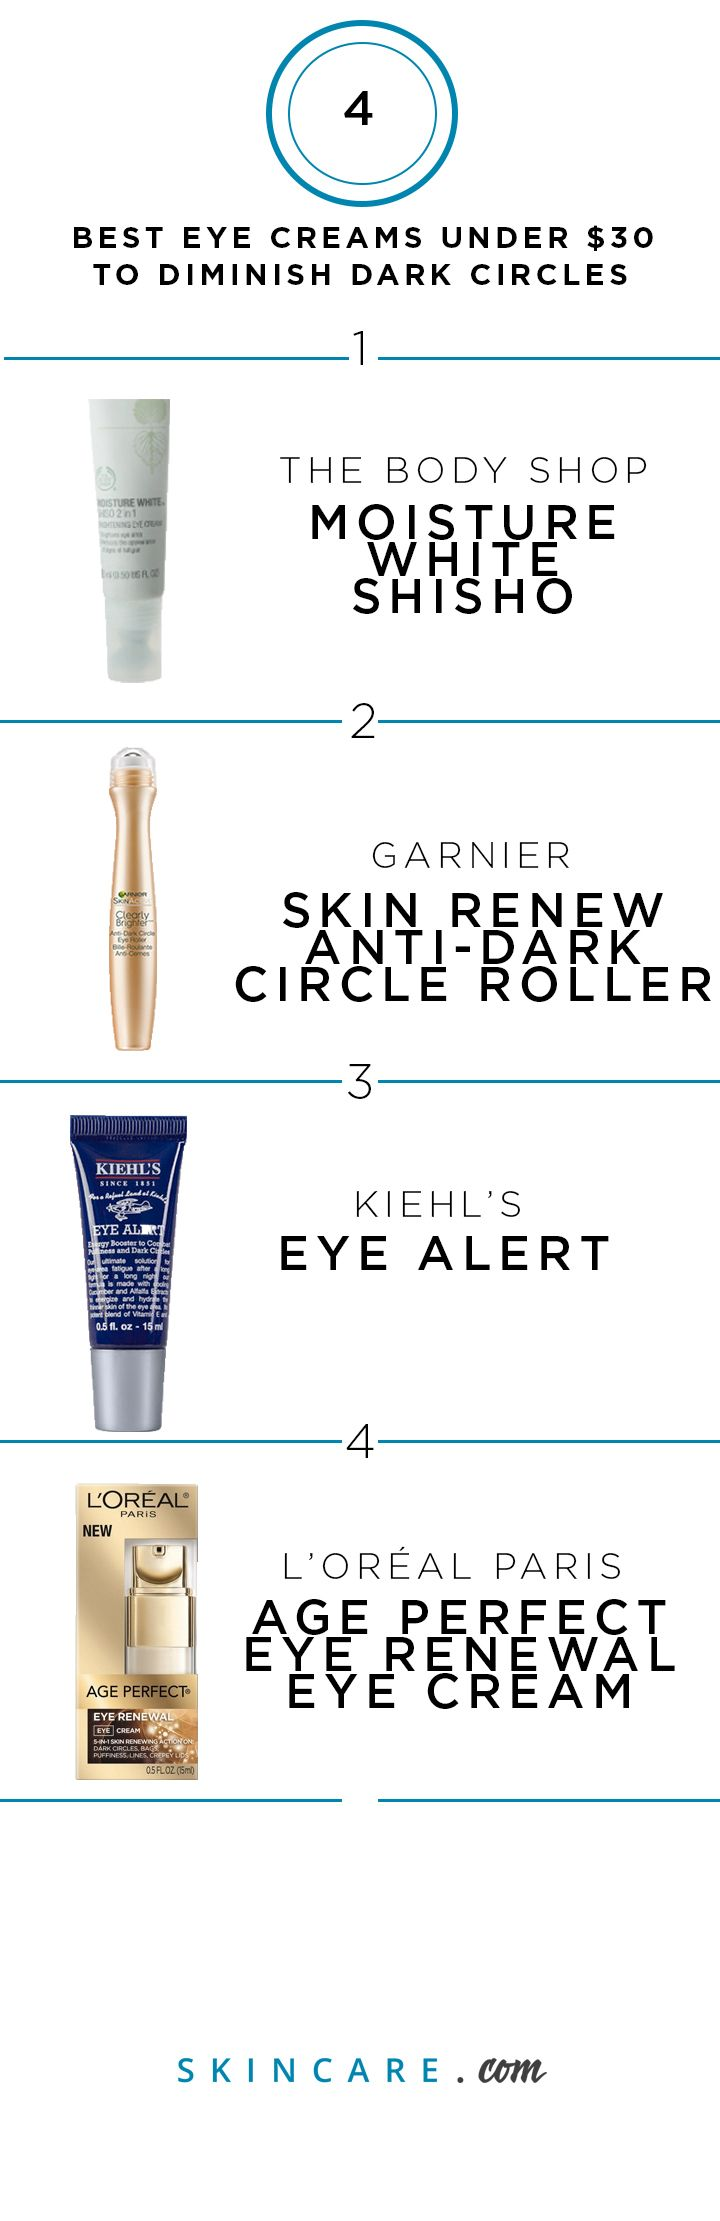 There's many eye creams on the market that can target dark circles, puffiness, and crow's feet, but some are much more affordable than others. Ahead, we're sharing the best eye creams for under $30, some of which you can get at the drugstore. Better yet, we reveal how you can cover up dark circles and puffiness quickly for those nights when you don't get enough sleep.